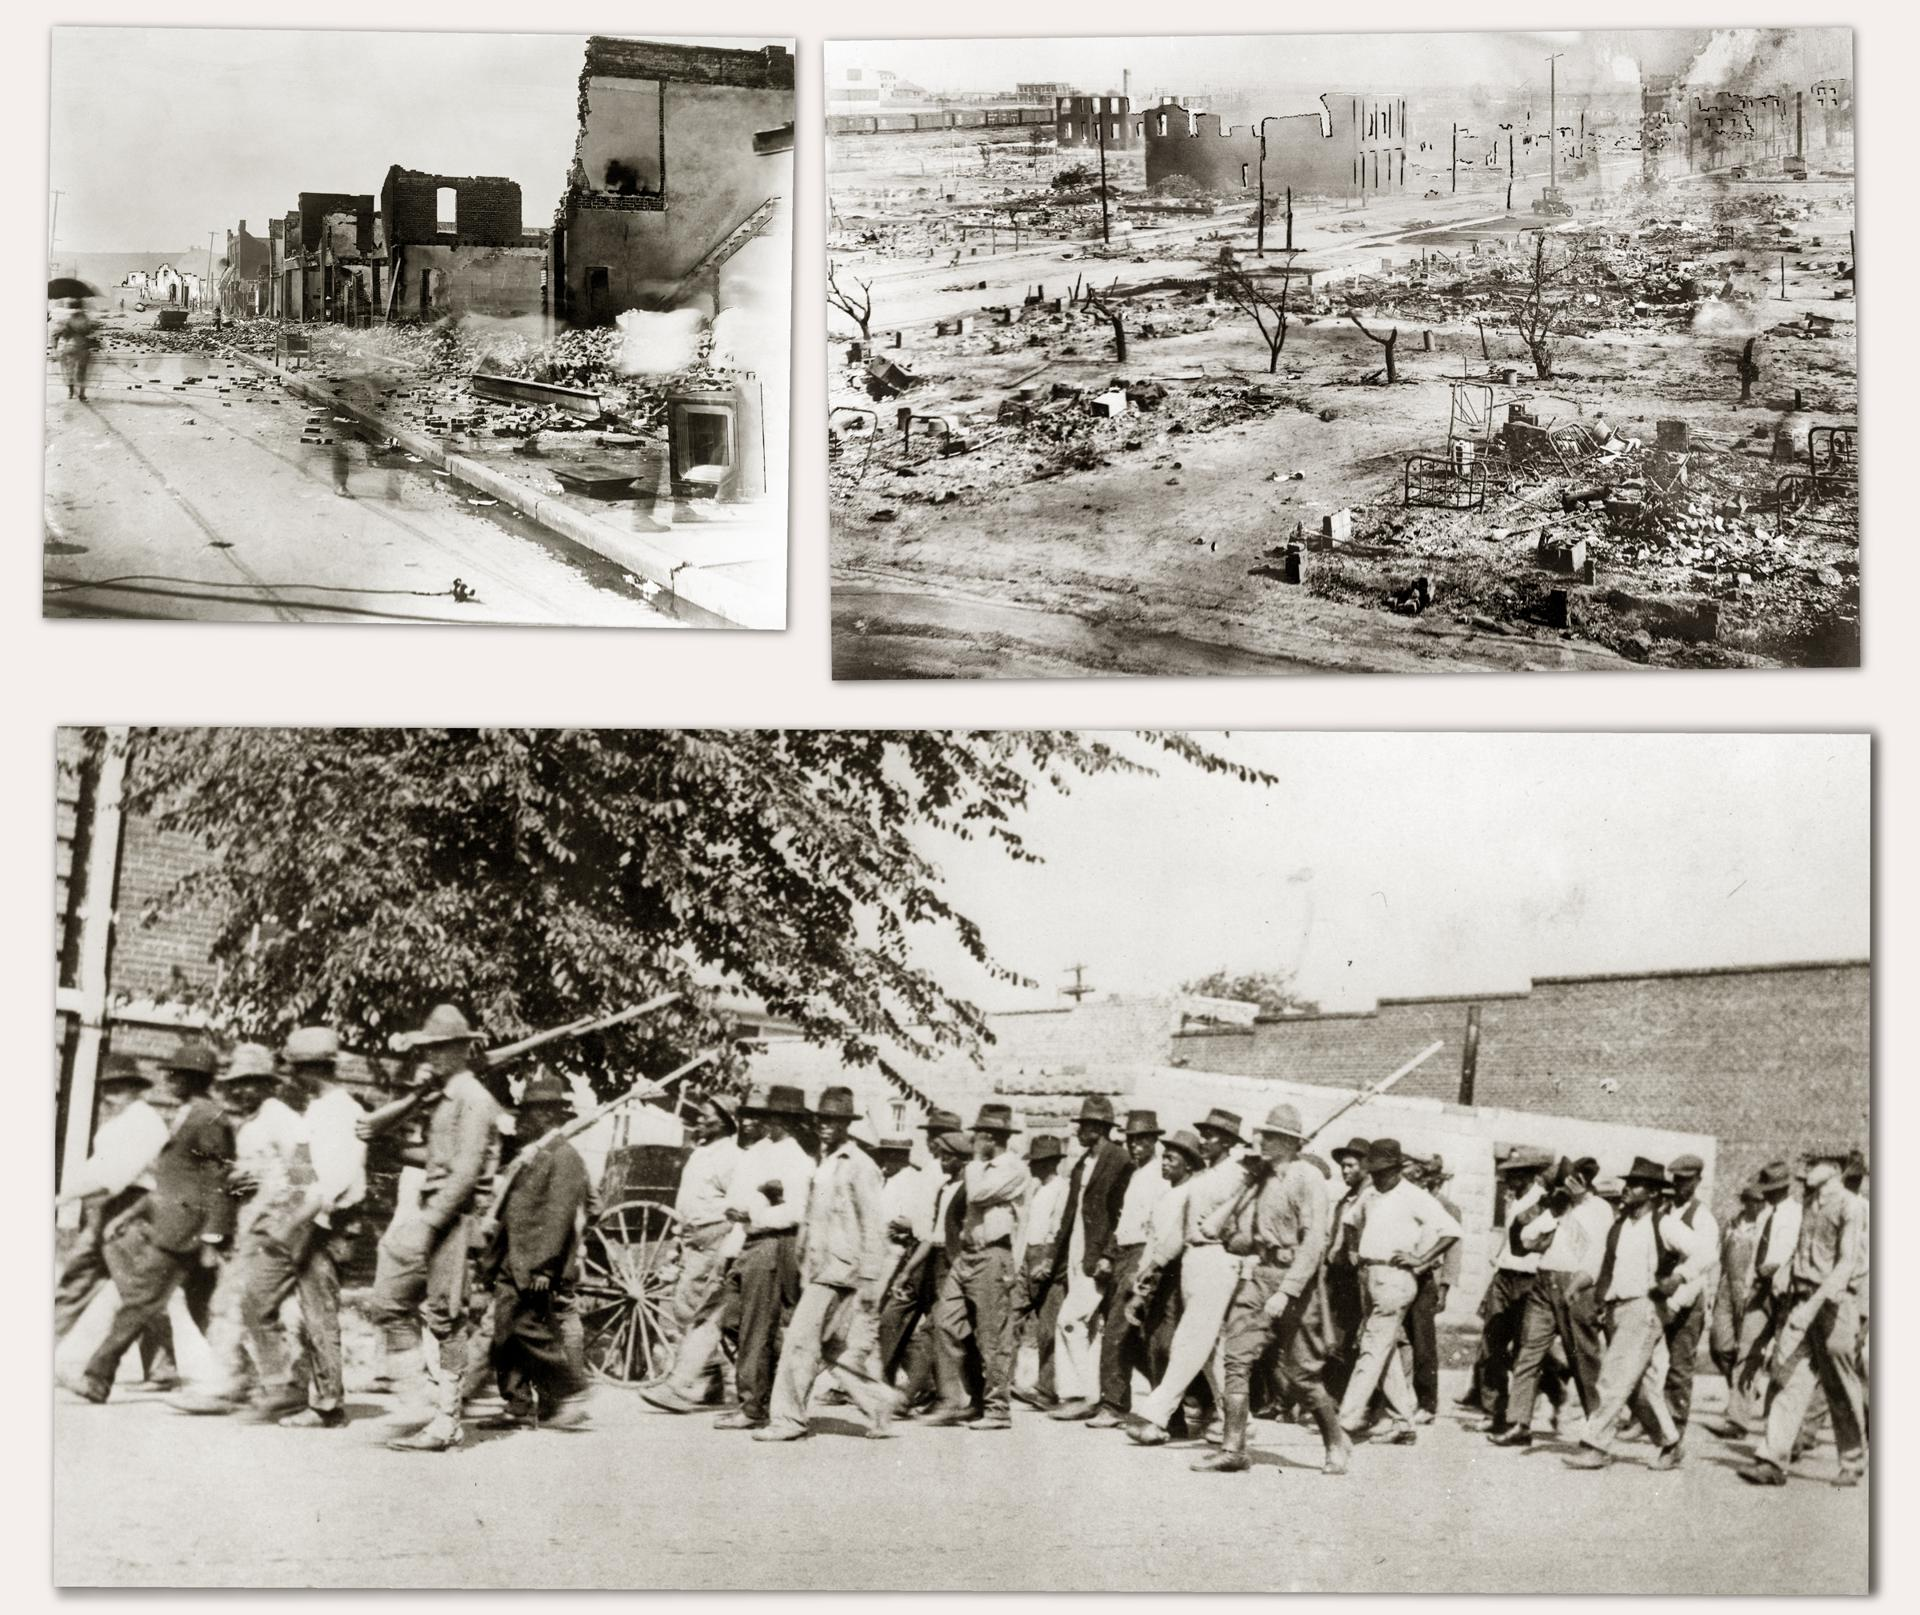 Paradise Lost: After the destruction of Greenwood, surviving citizens were rounded up and sent to internment camps.